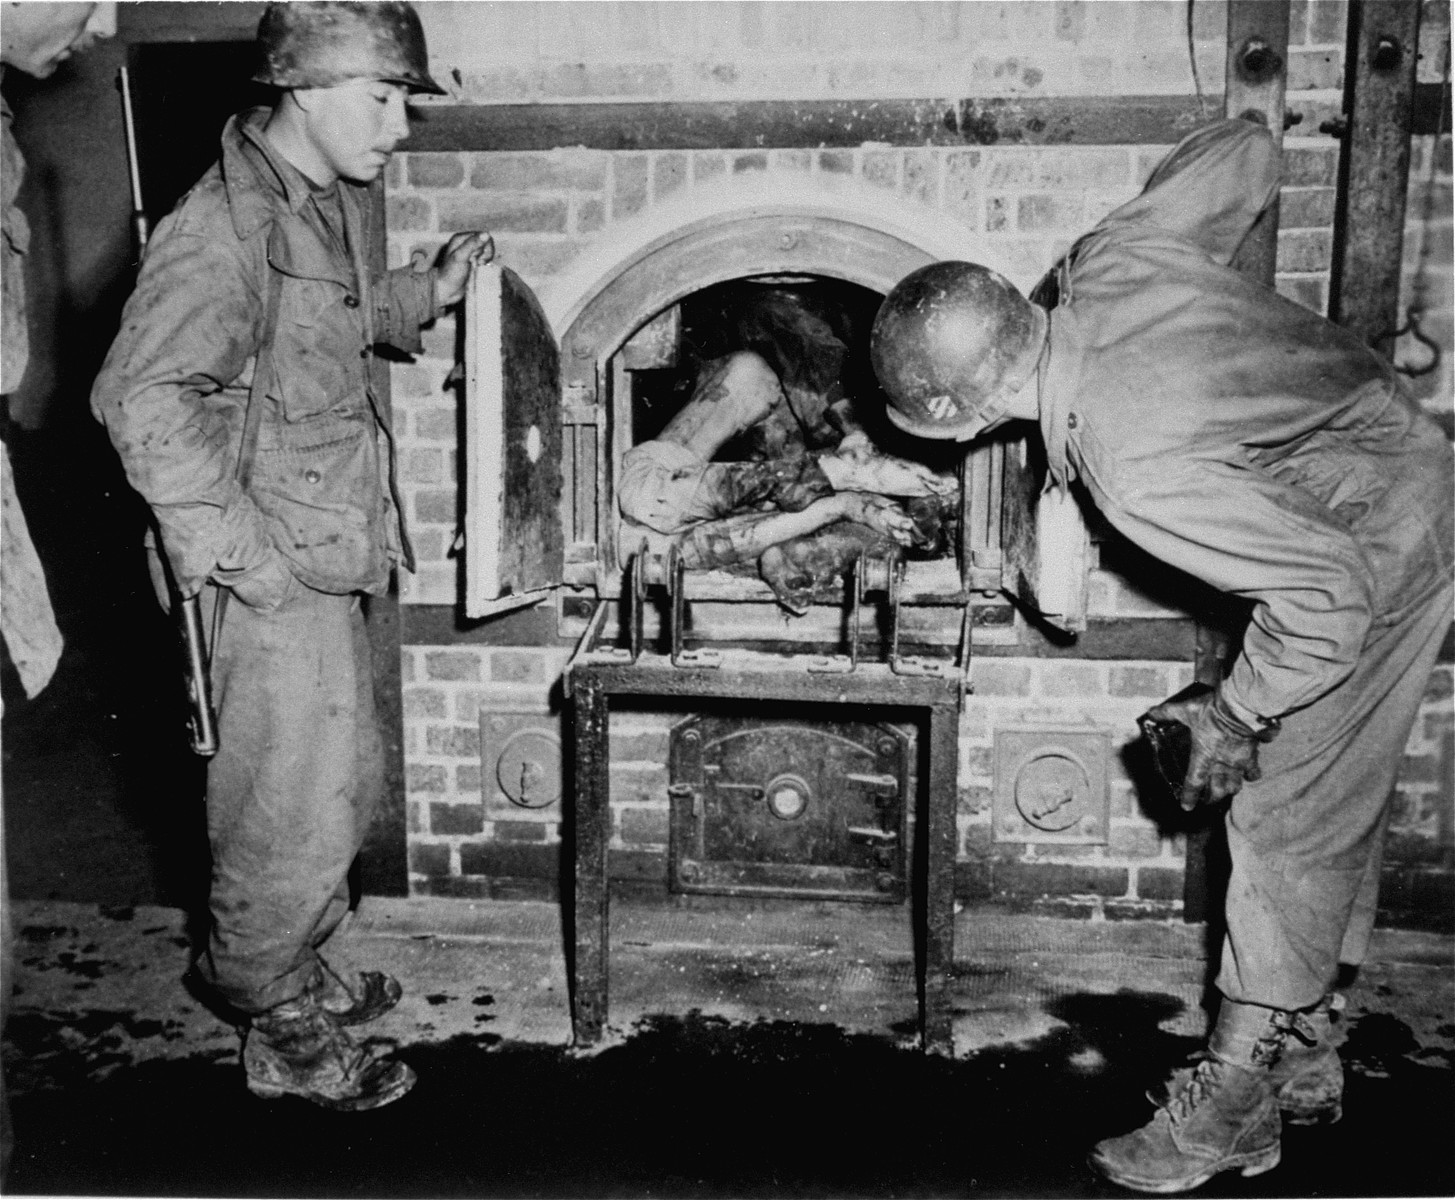 American soldiers inspecting the crematorium in Dachau.  The corpse was put into the ovens after liberation to simulate the operation of the furnace.